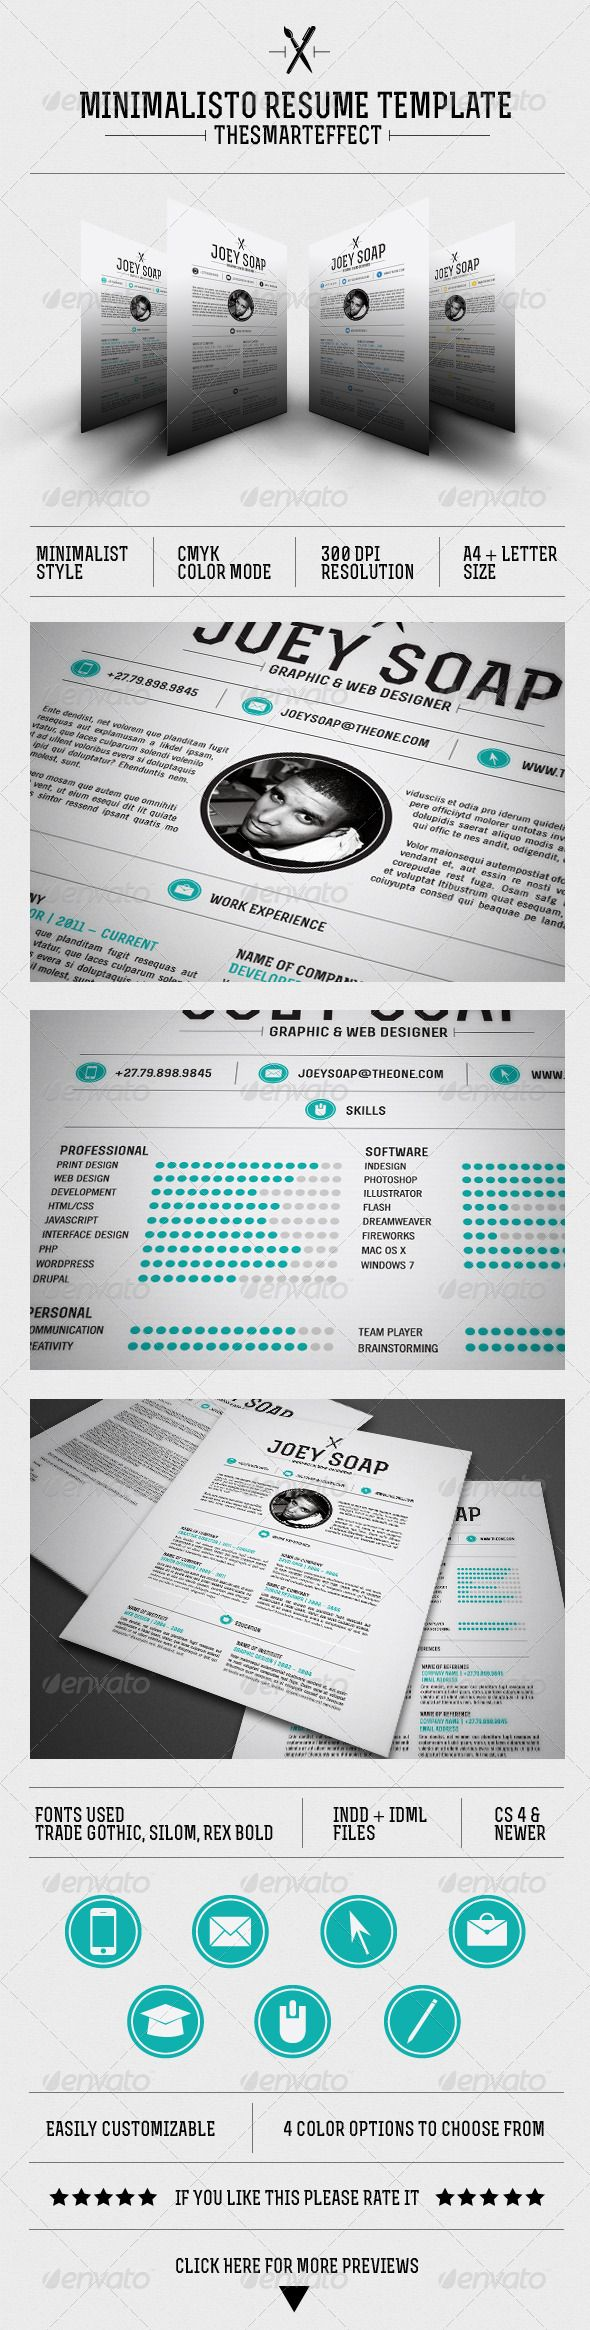 Minimalisto Resume Template 9 best cv design